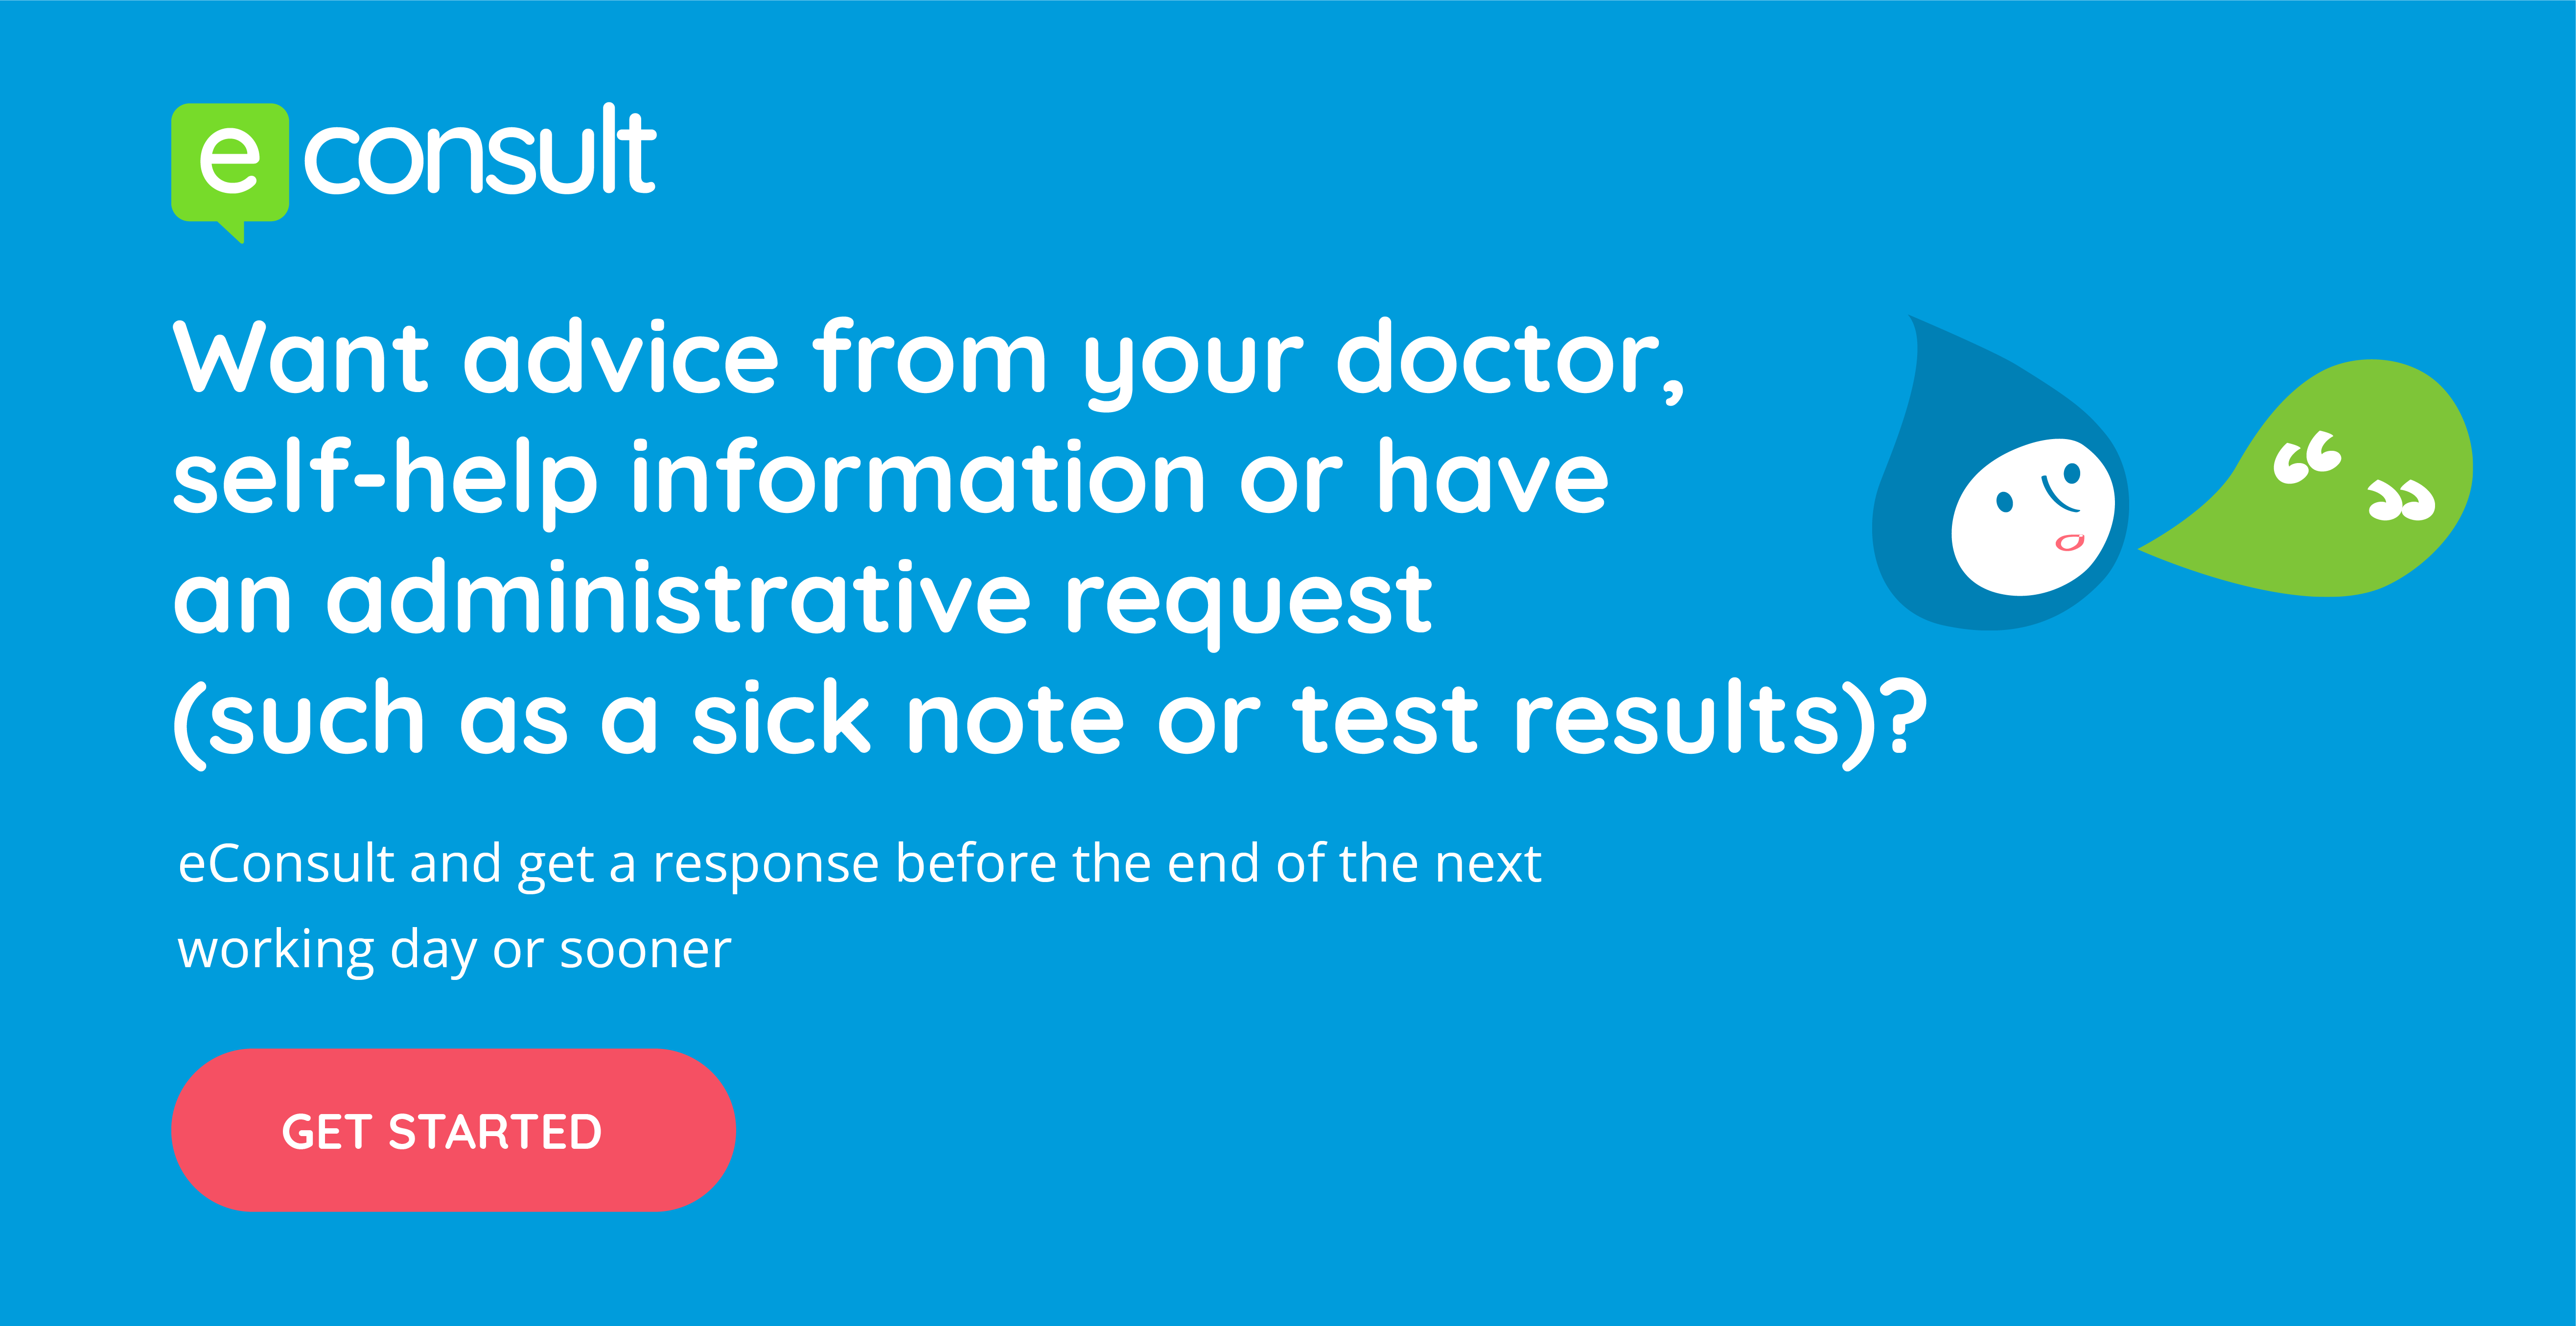 eConsult Want advice from your doctor self help information or have an administrative request such as a sick note or test results? eConsult and get a response before the end of the next working day or sooner get started